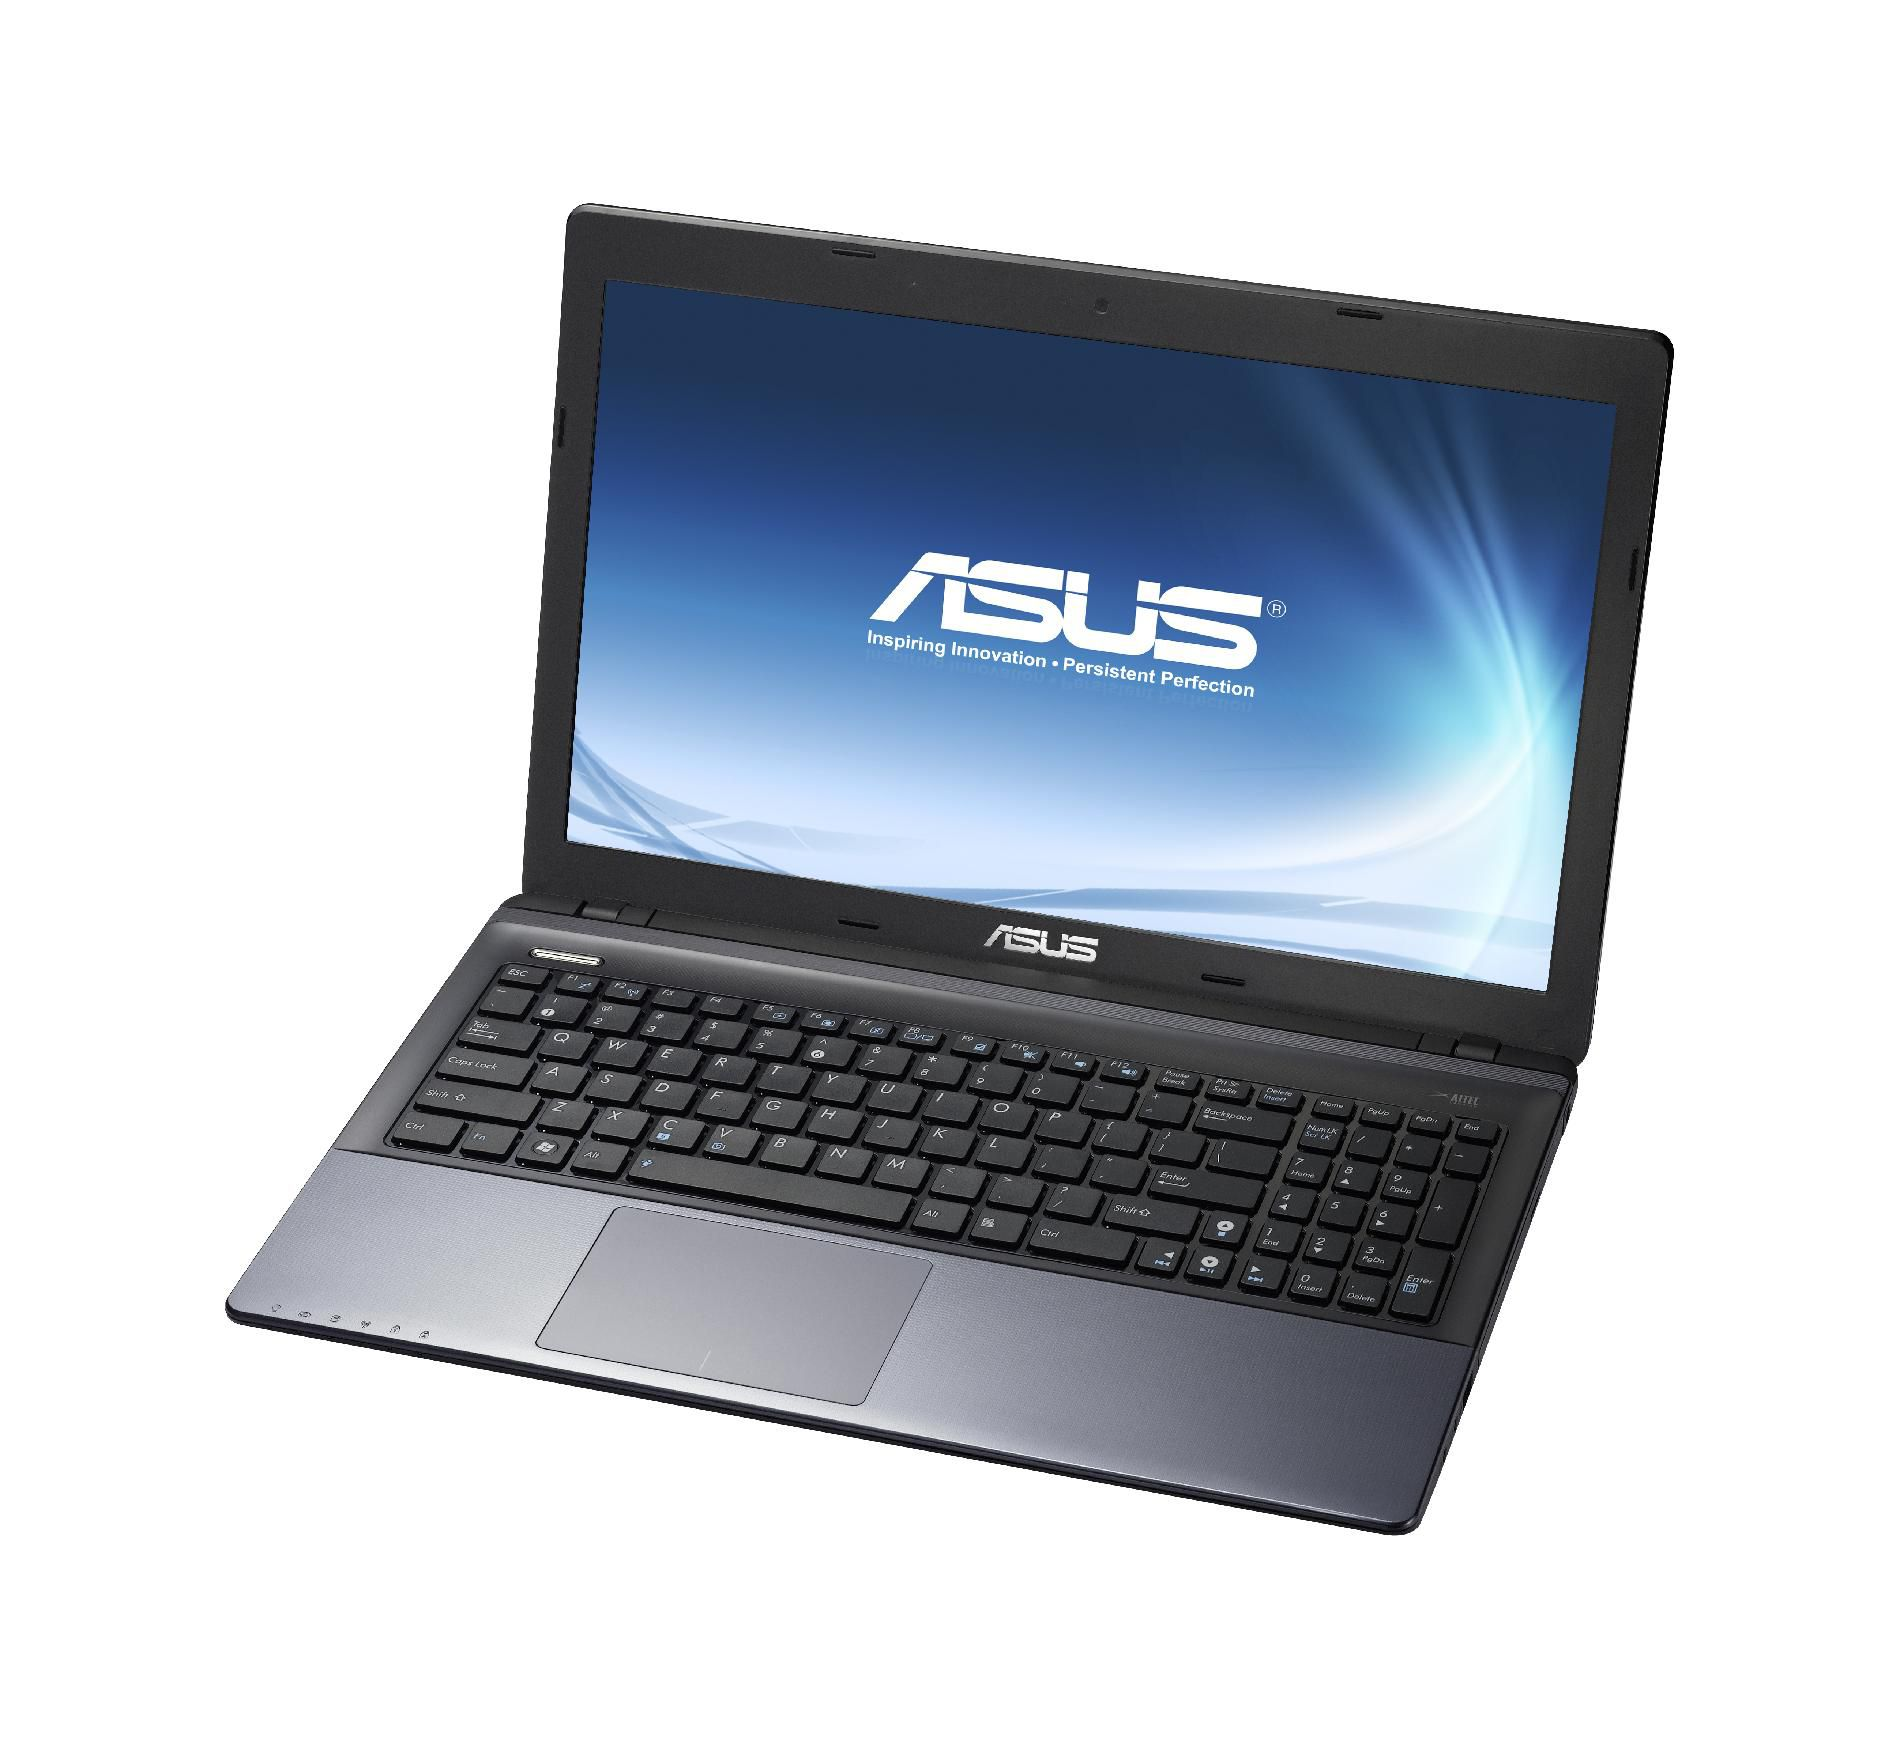 "Asus 15.6"" K55N-RIN4 Notebook PC with AMD A8-4500M APU Processor"